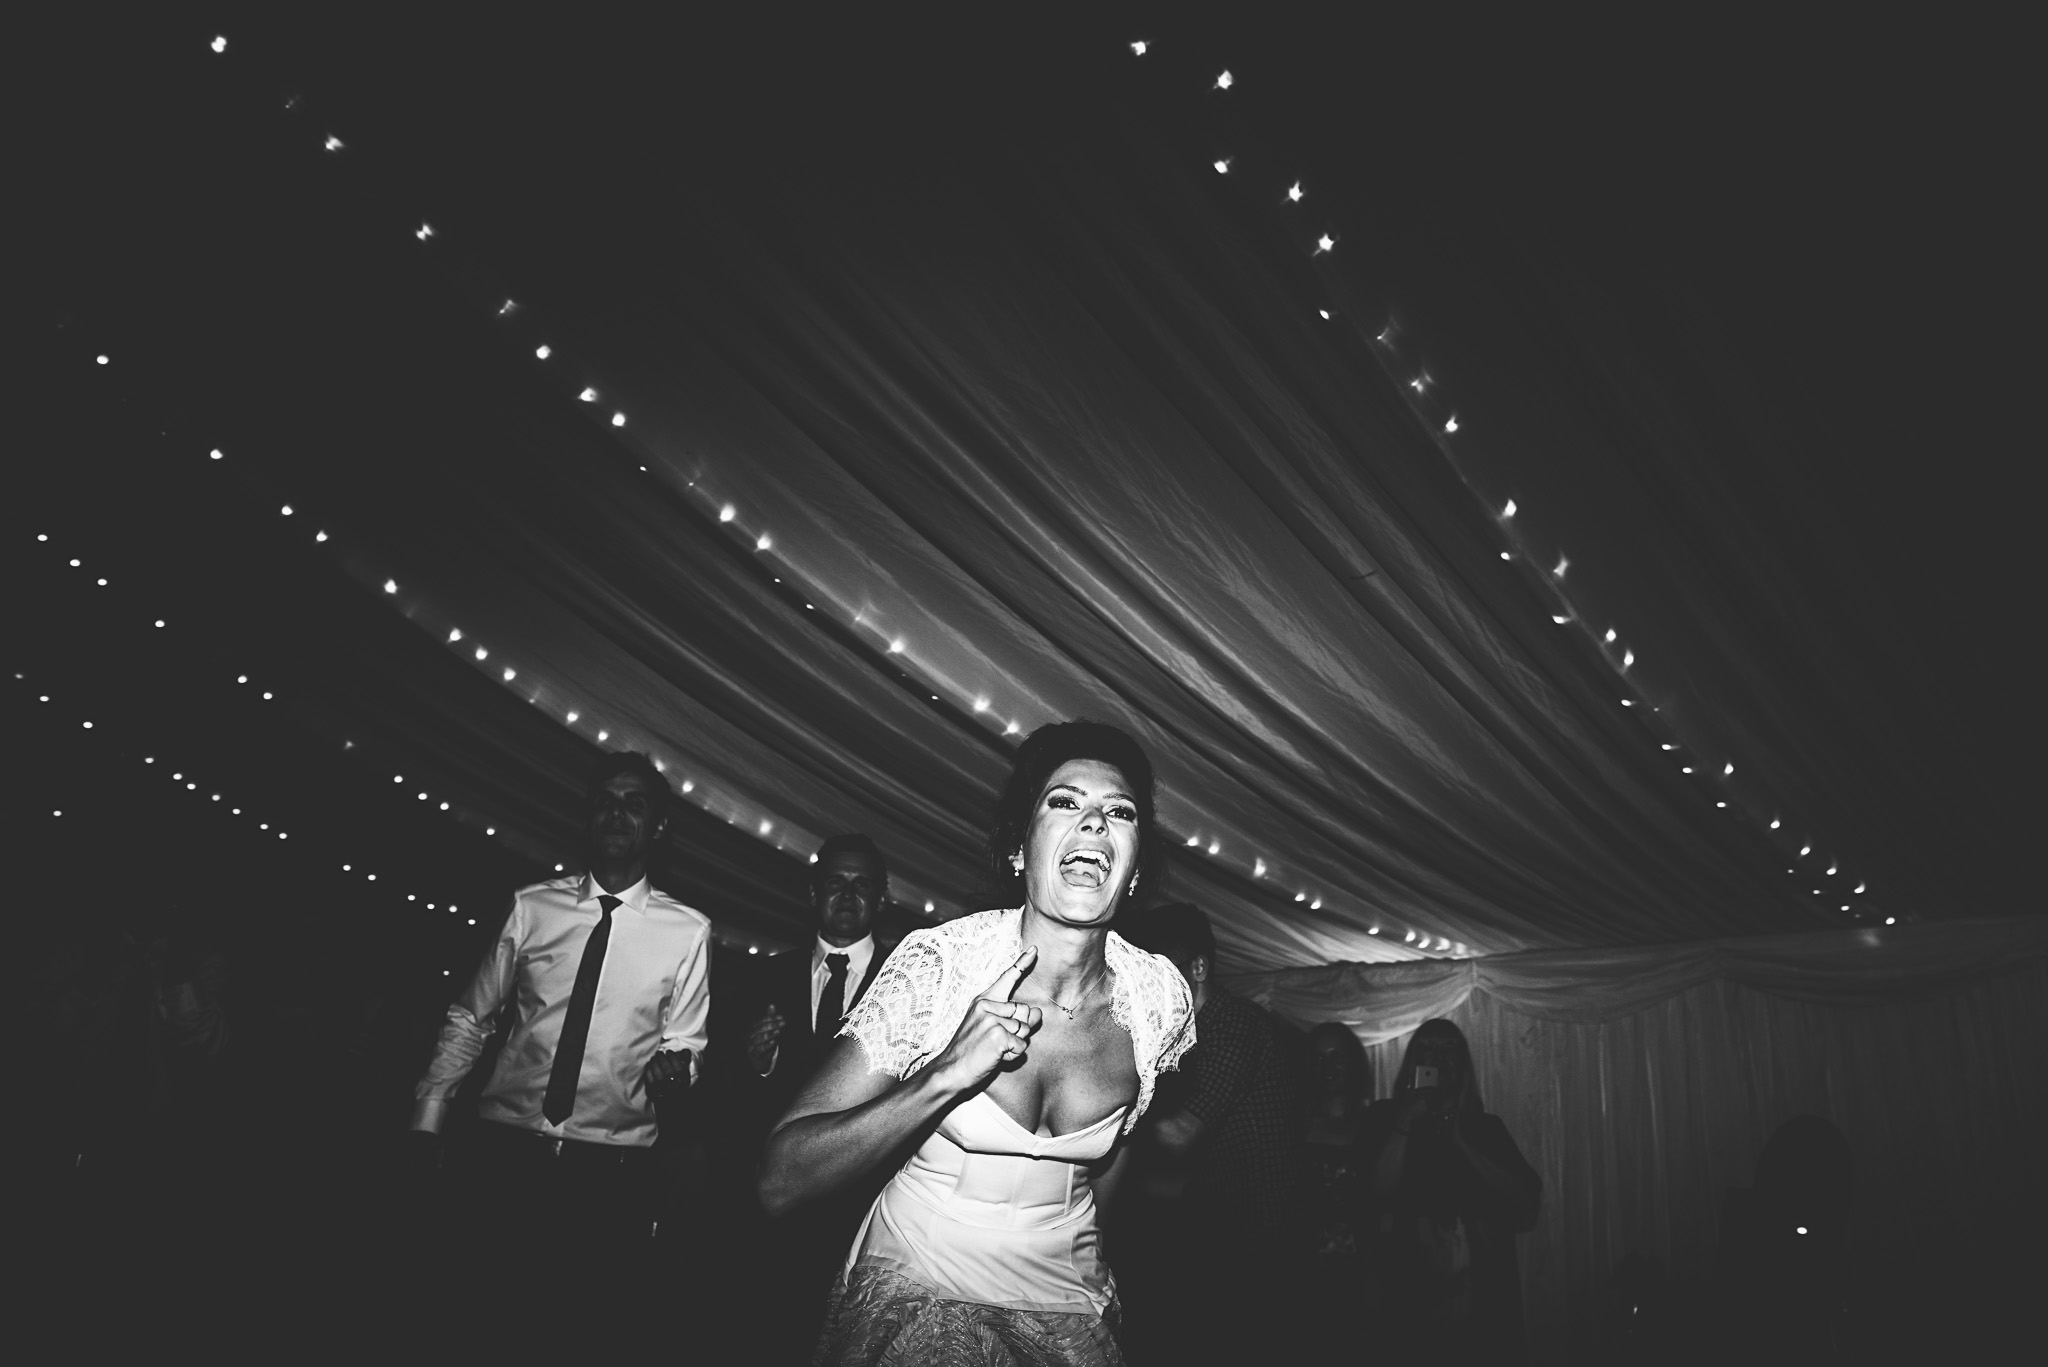 Lara & Jack Wedding 220815 by Barney Walters_1044_BW2_0938